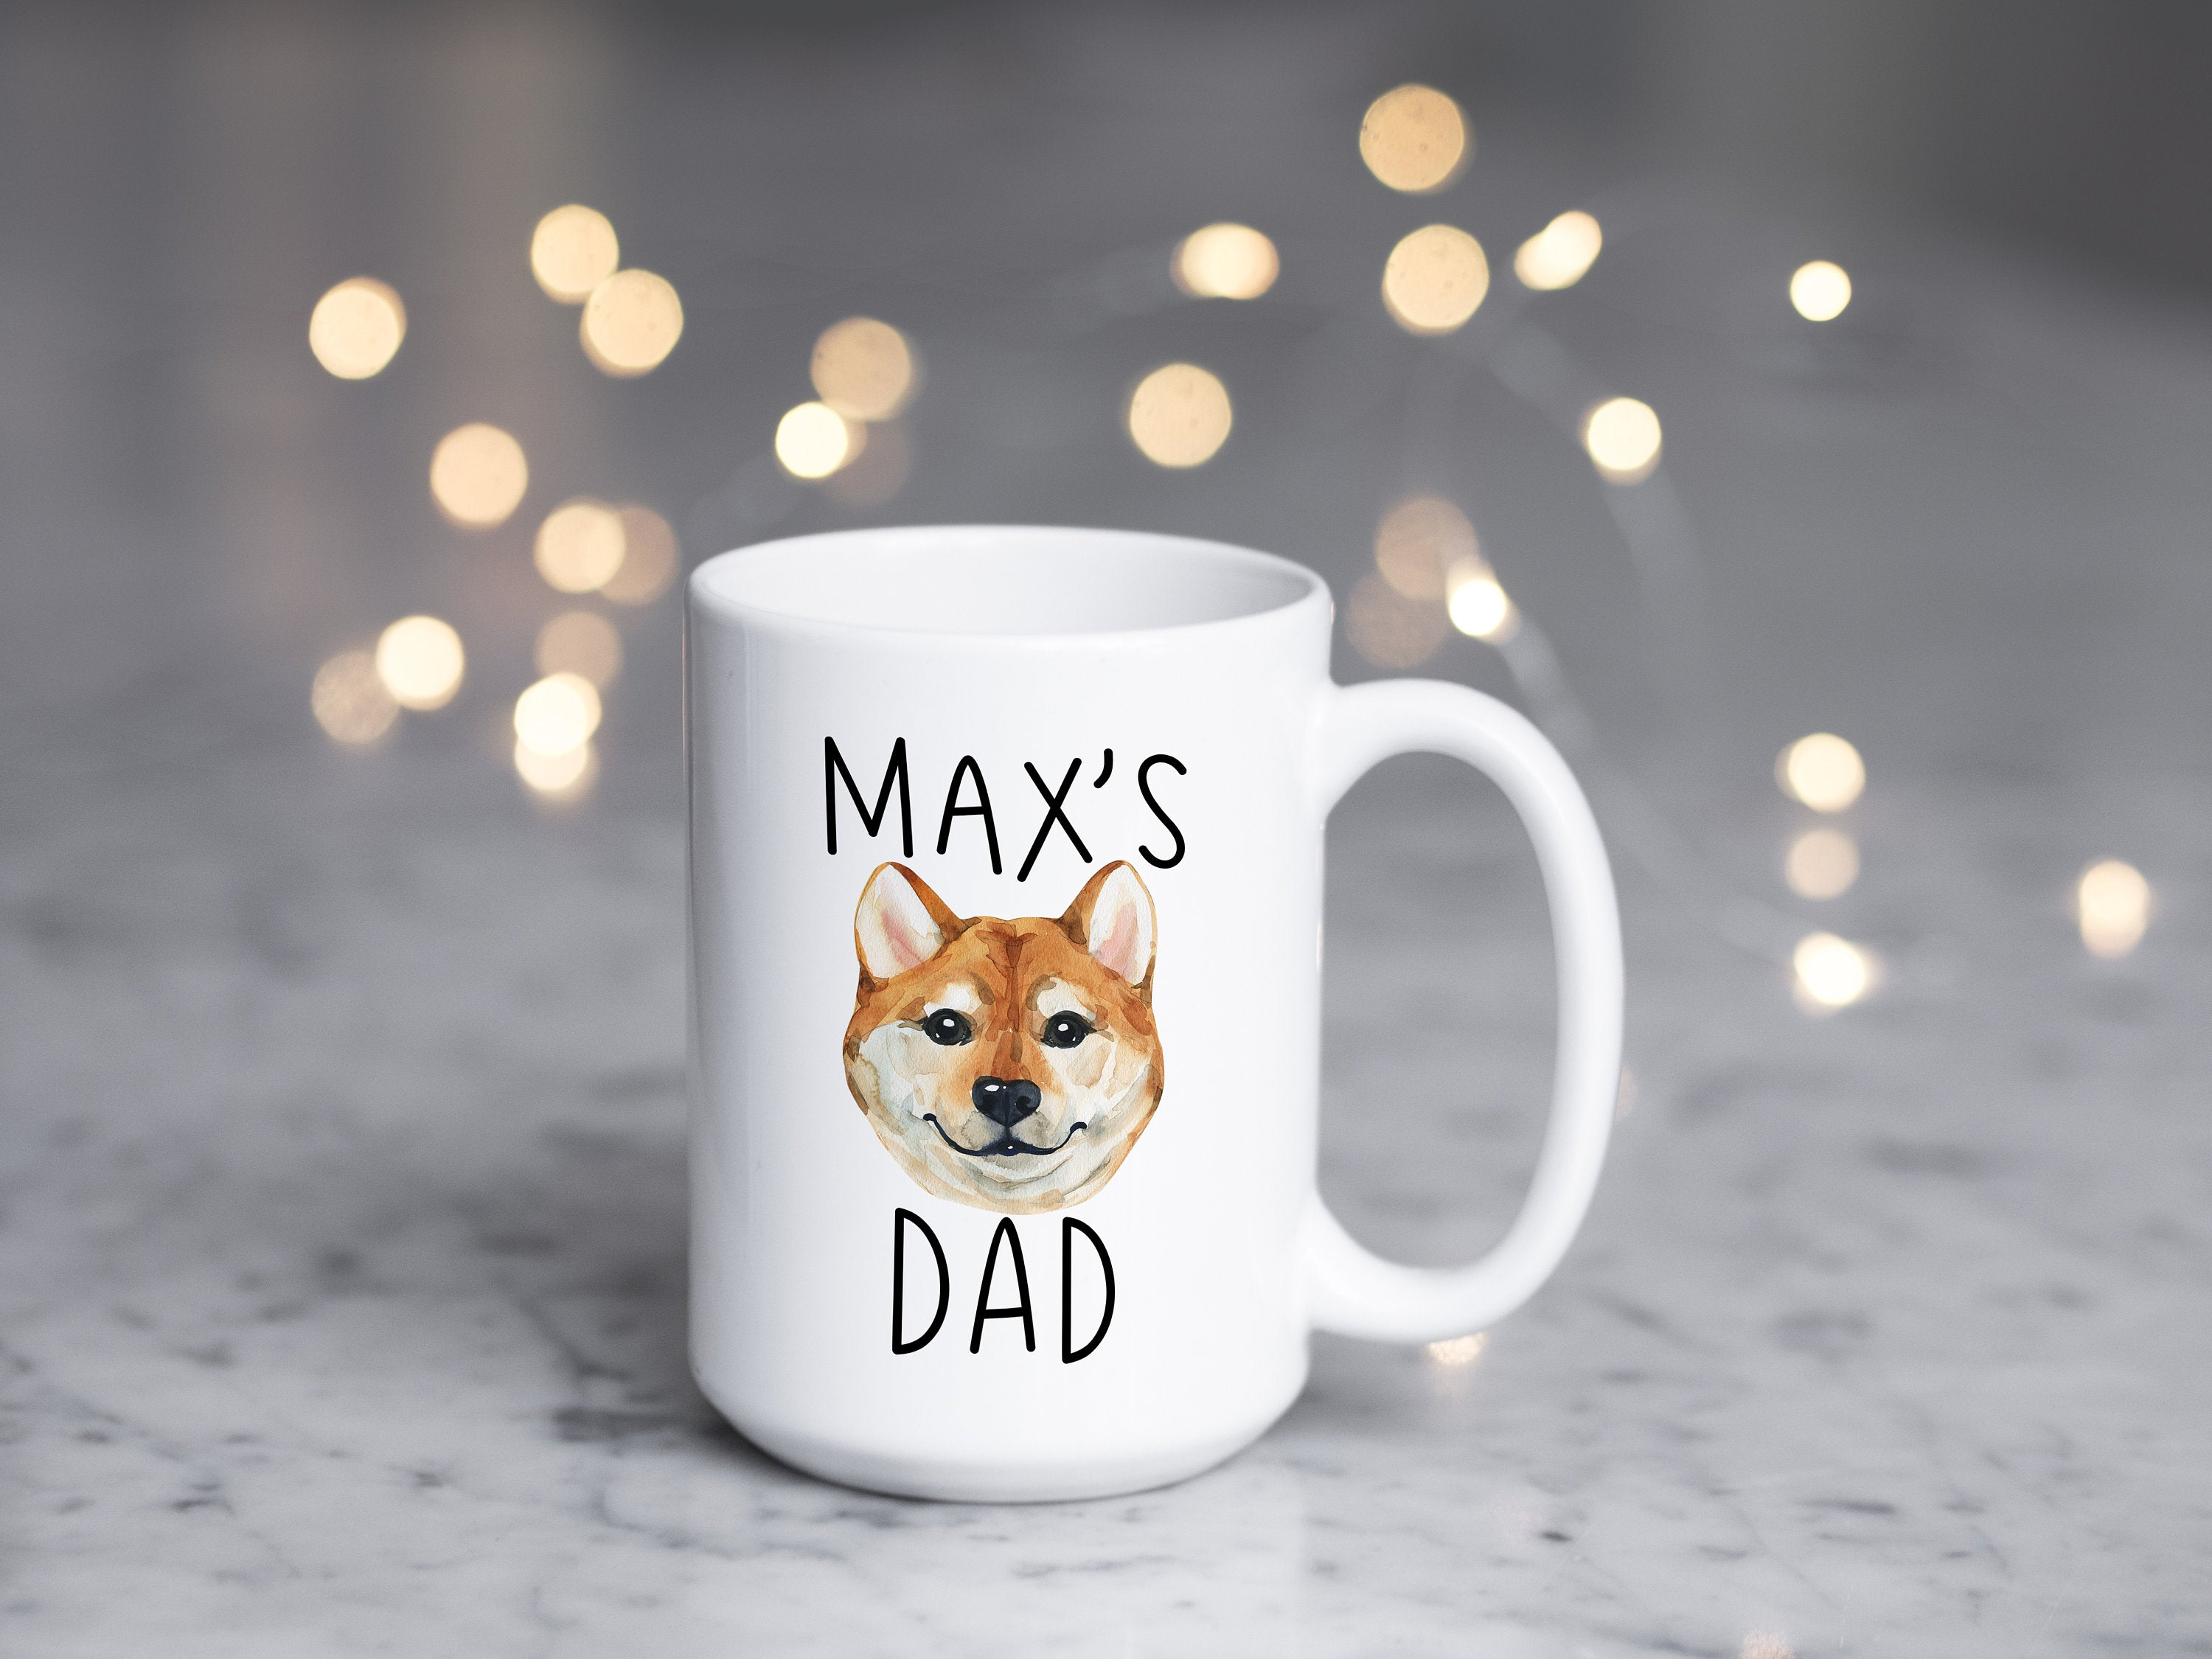 Personalized Dog Dad Gift, Custom  Akita Inu Mug, Dog Lover Gift, Gifts for Dog Dad, Personalized Dog Coffee Mug,  CUTE Pet Gift for Him S32